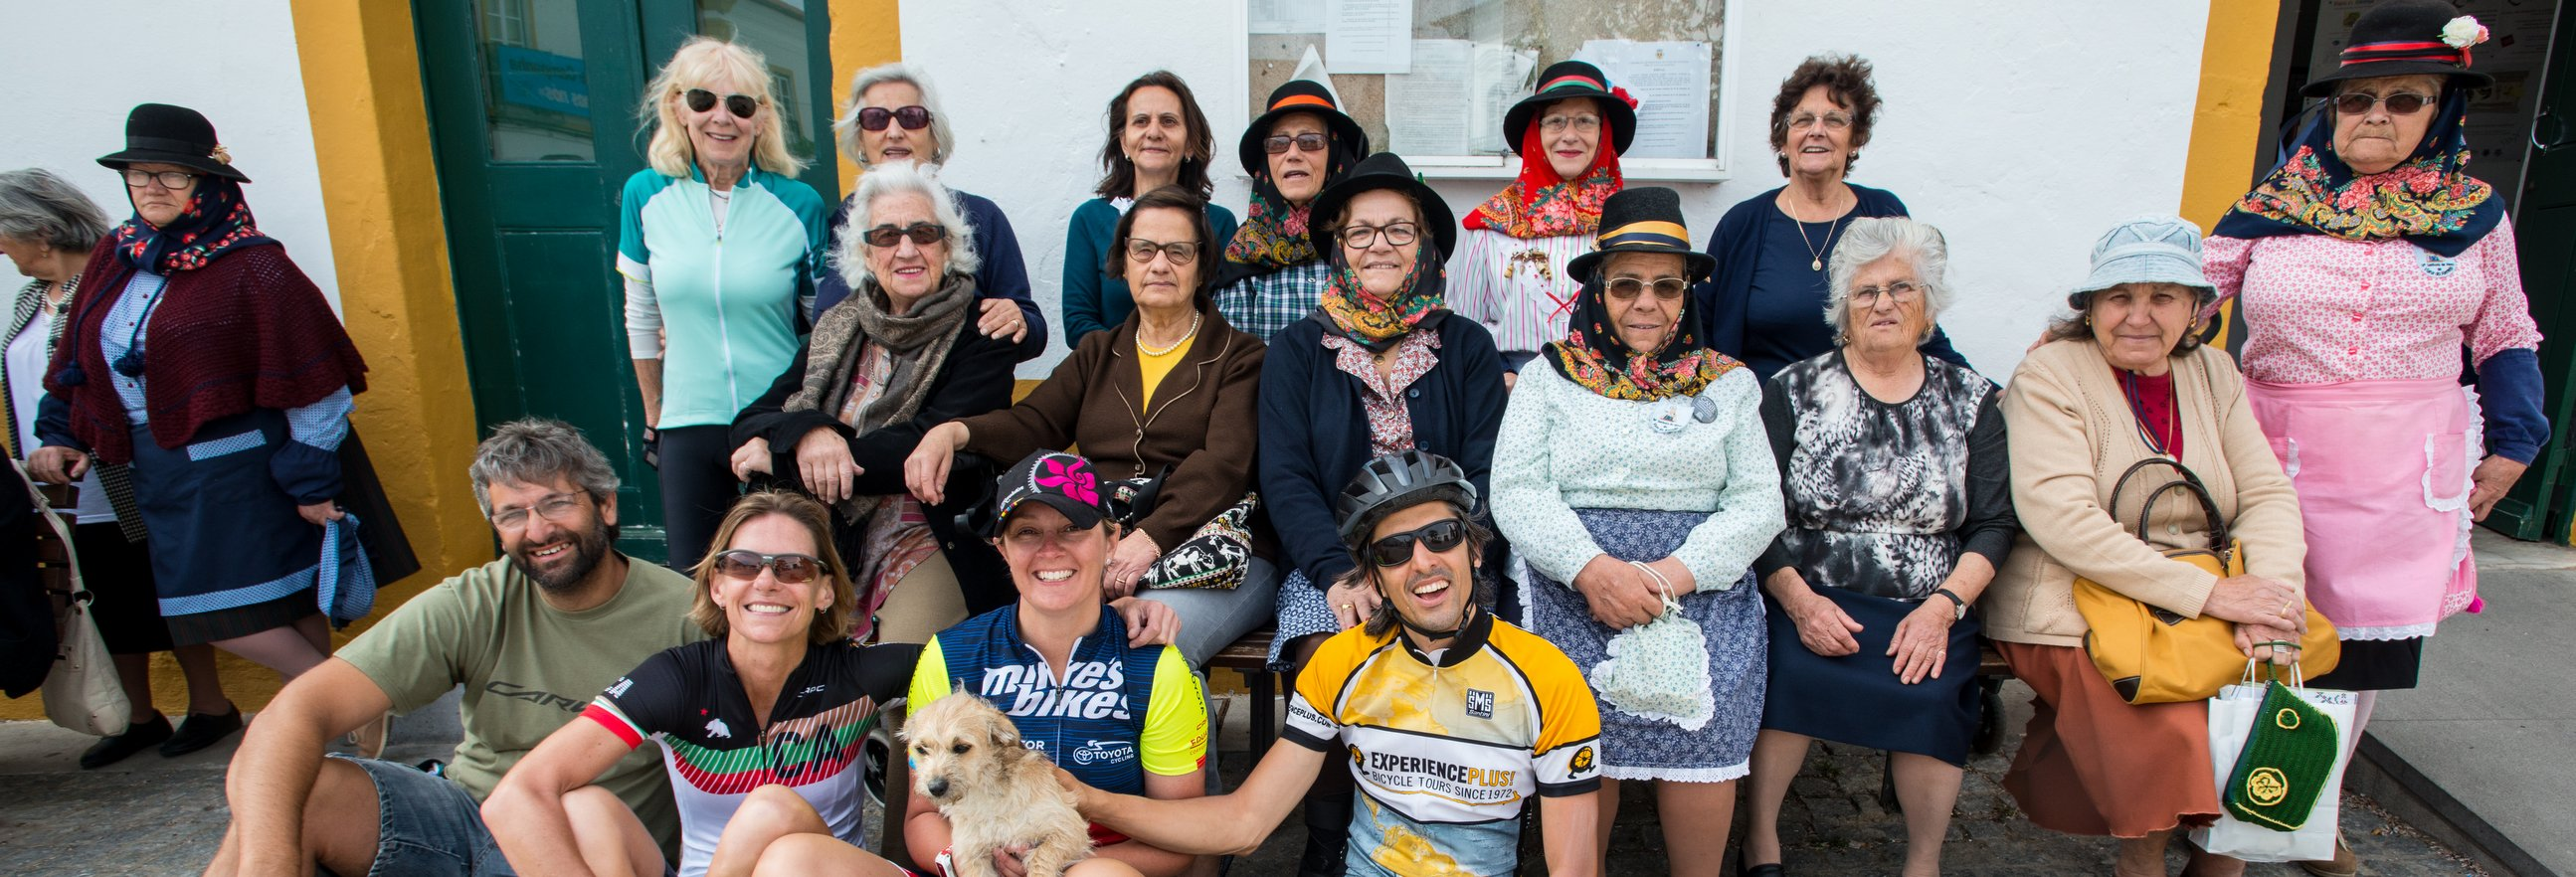 Group meeting locals in Portugal on ExperiencePlus! Bike Tour - photo courtesy of traveler Steve Stroud